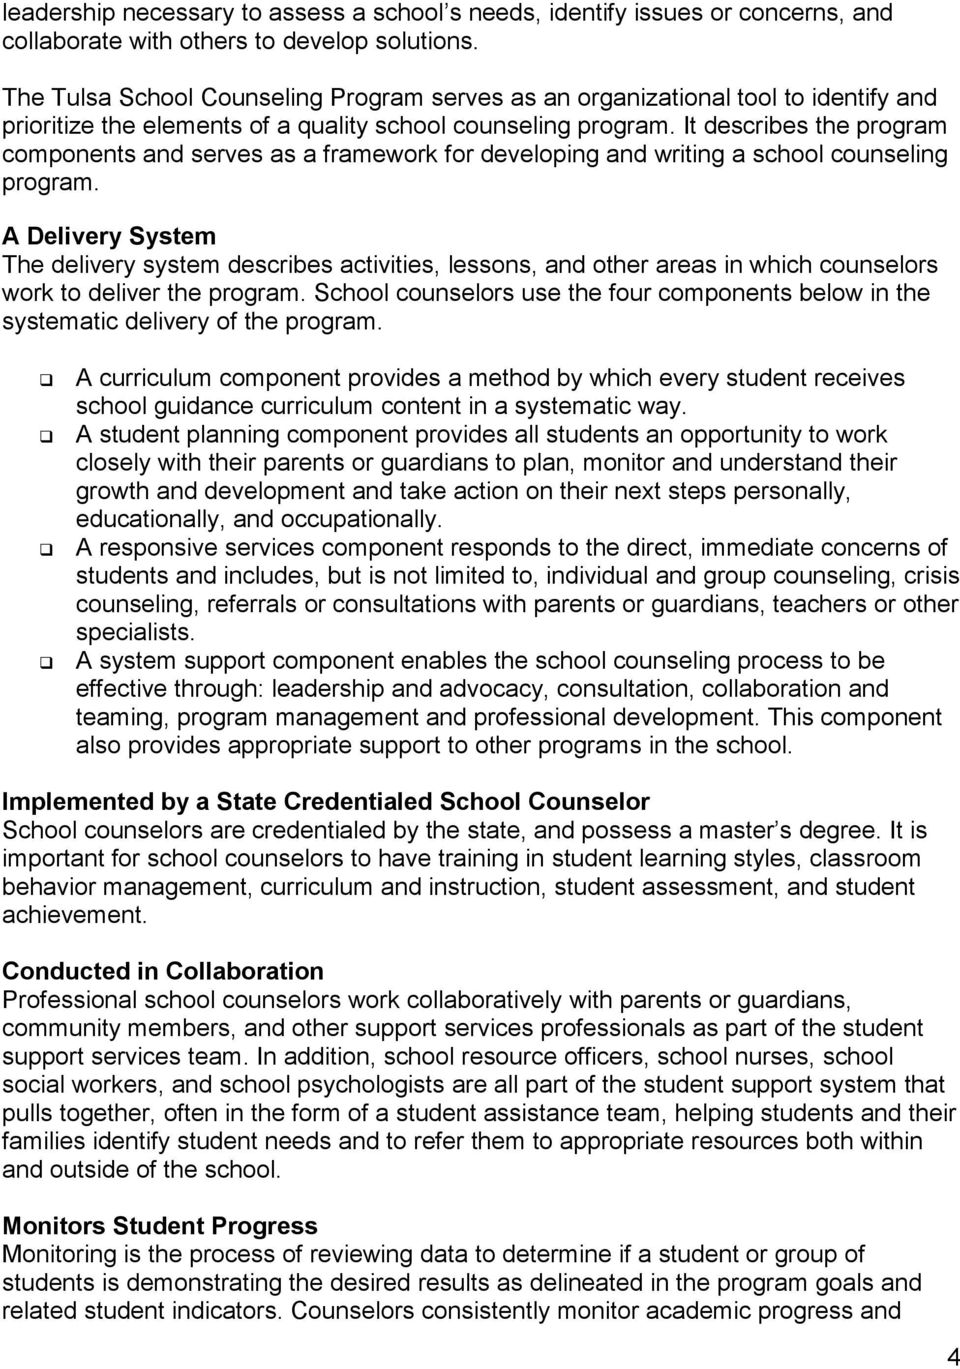 It describes the program components and serves as a framework for developing and writing a school counseling program.